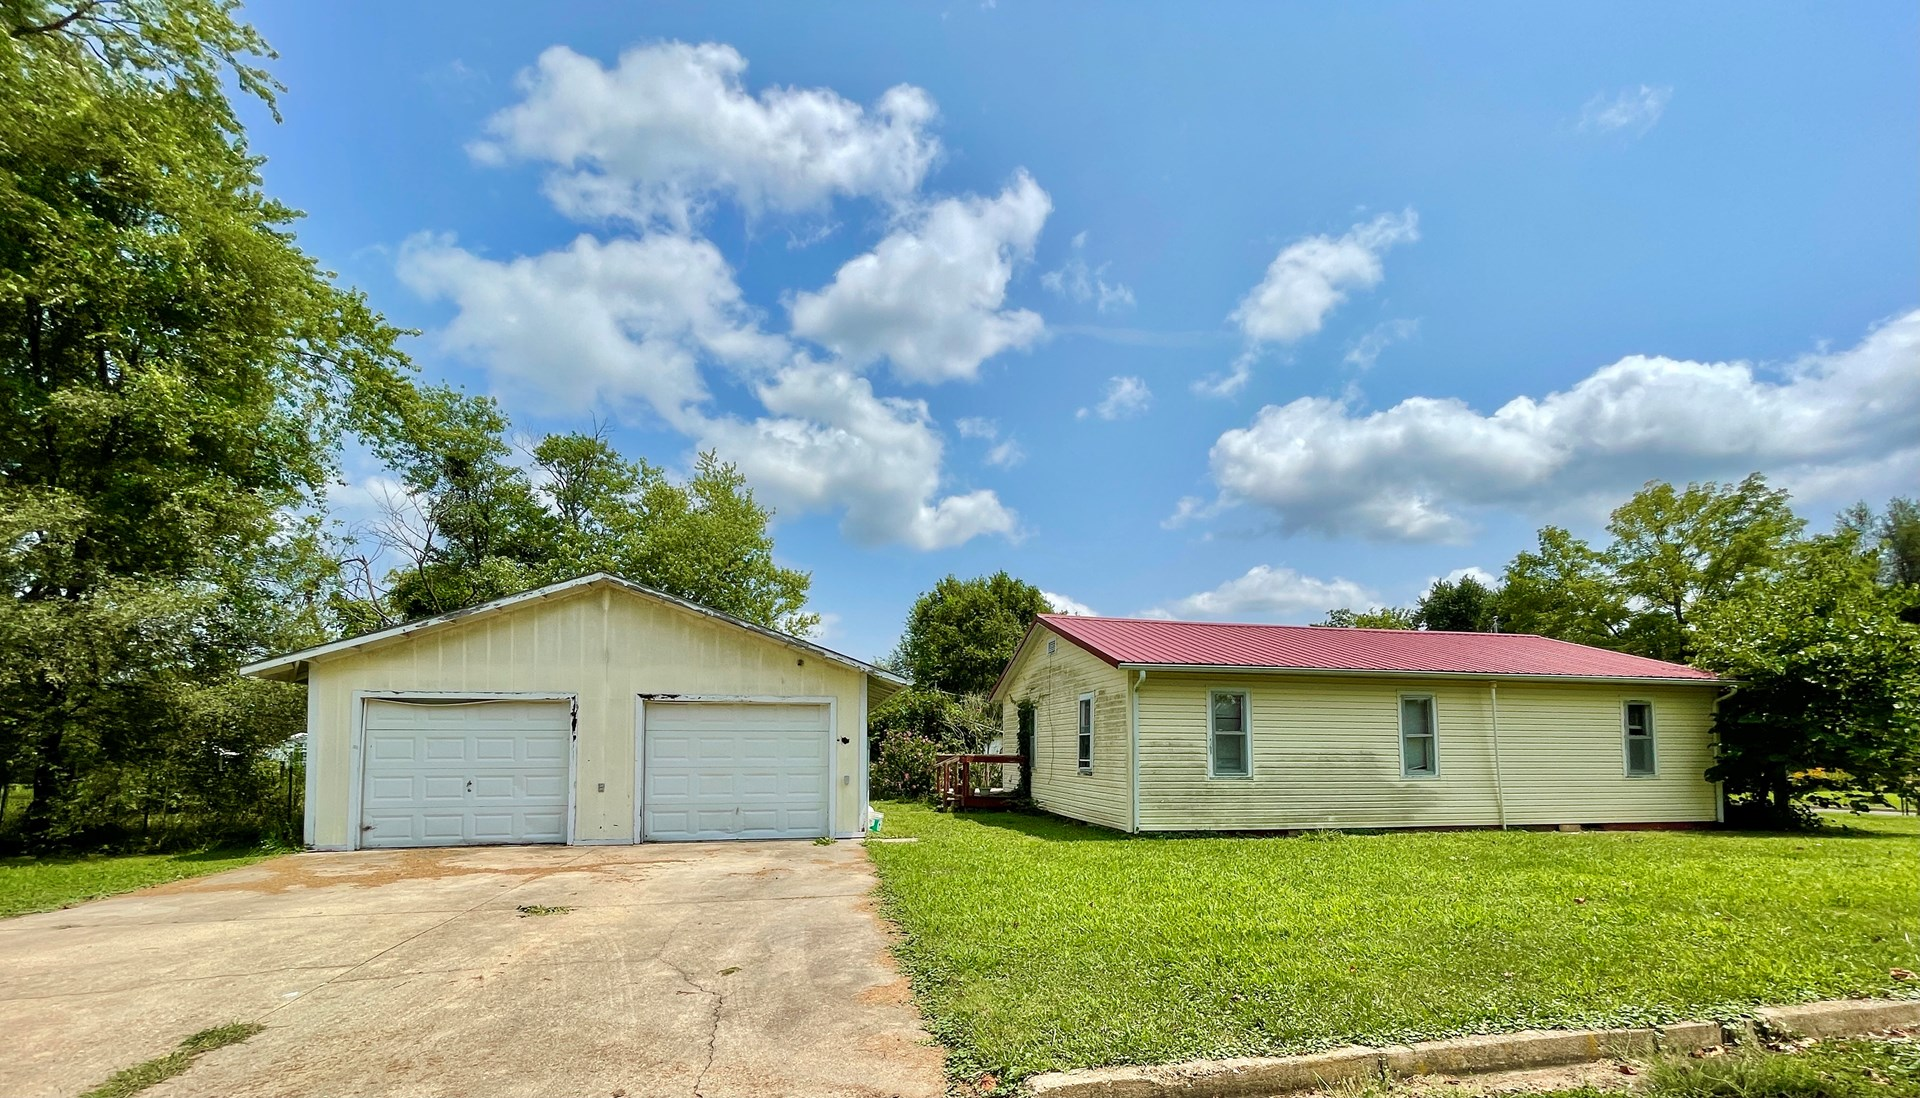 Home in Town for Sale - Mountain Grove, MO